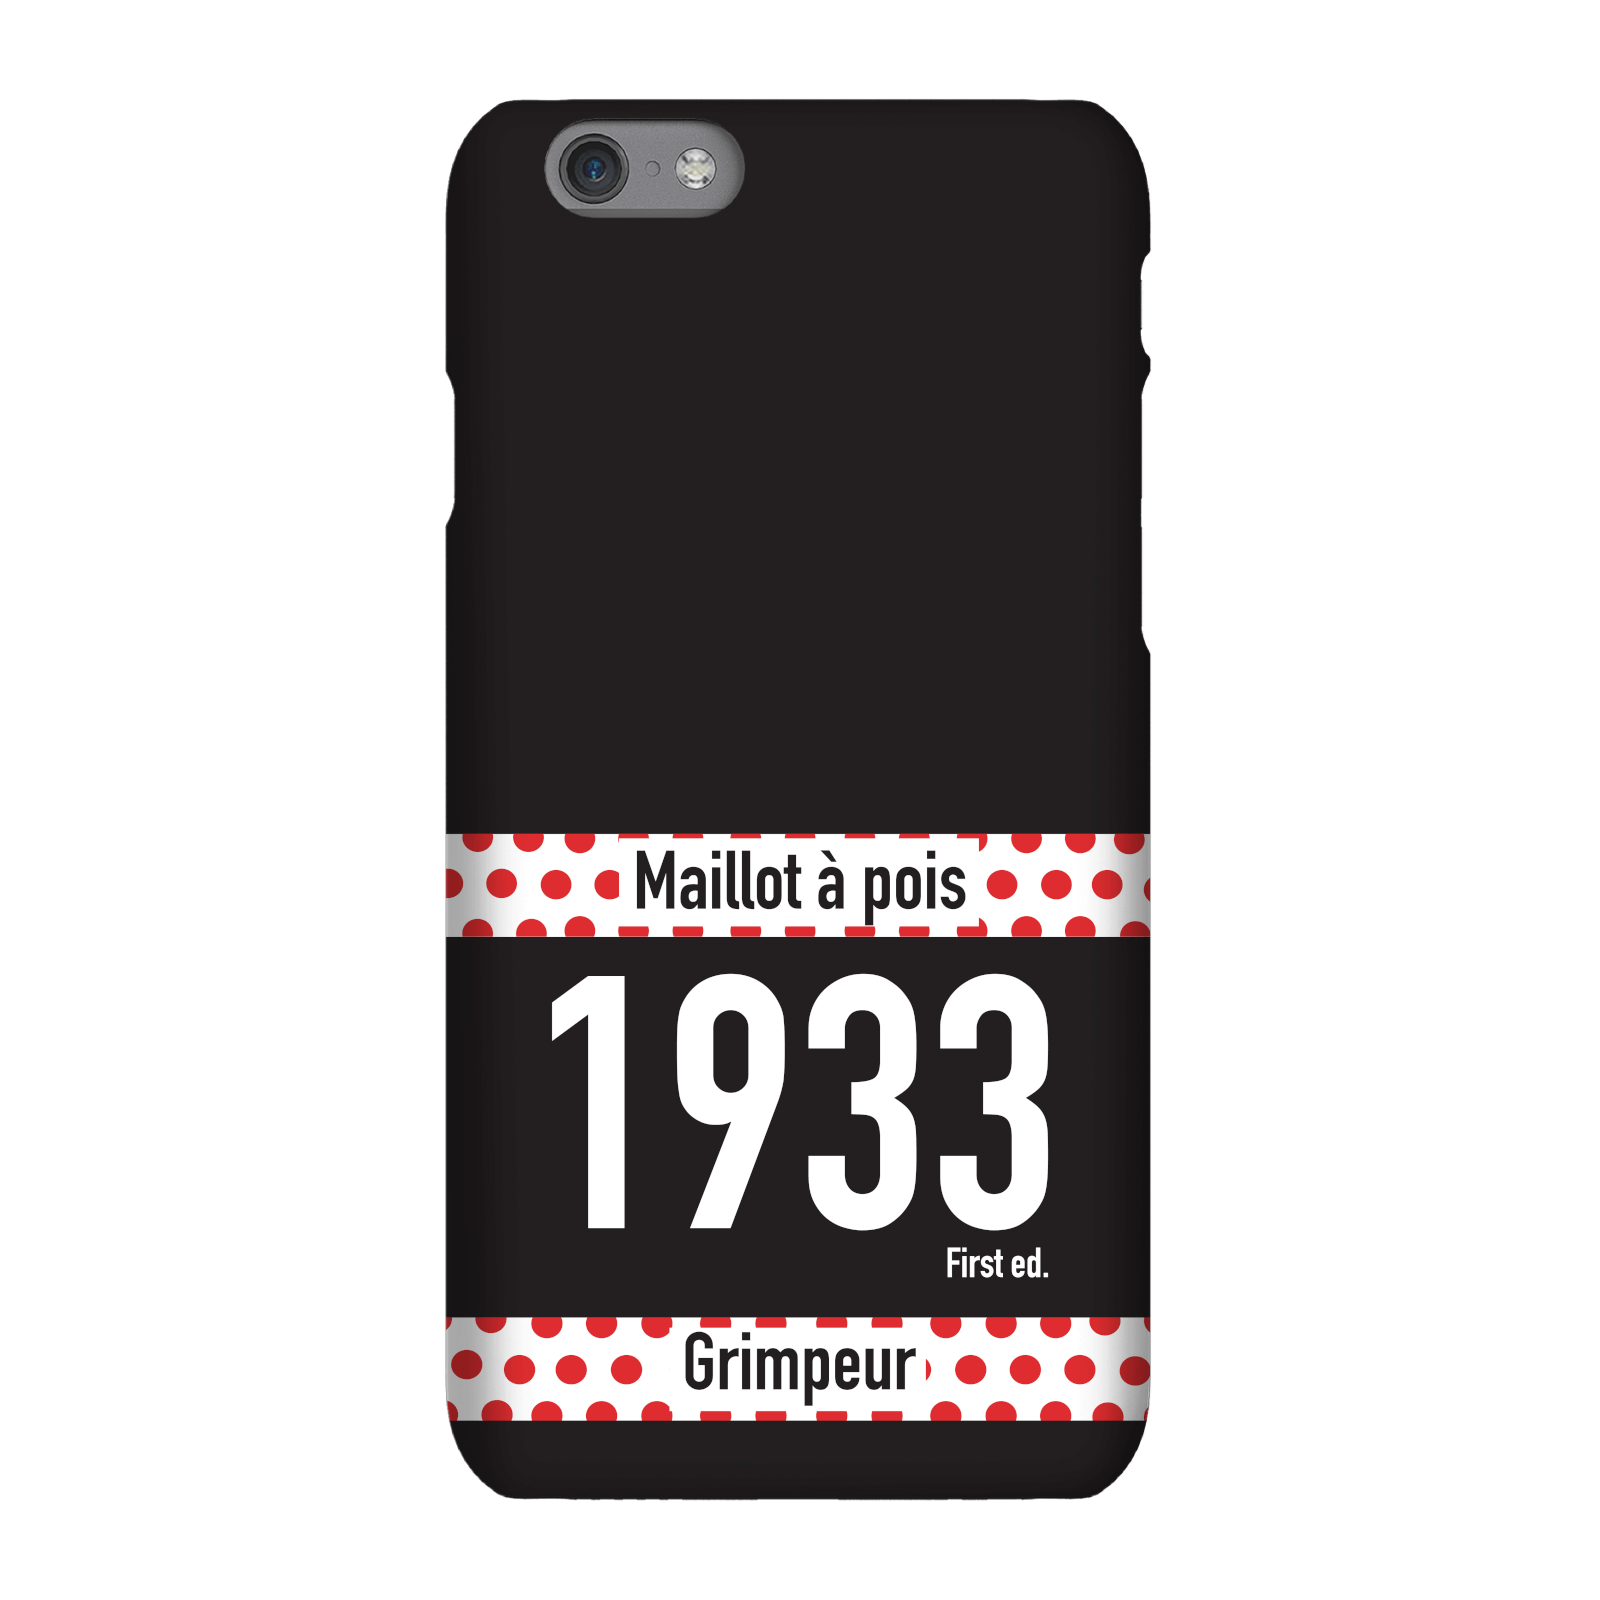 Maillot A Pois Phone Case for iPhone and Android - Samsung S8 - Snap Case - Matte